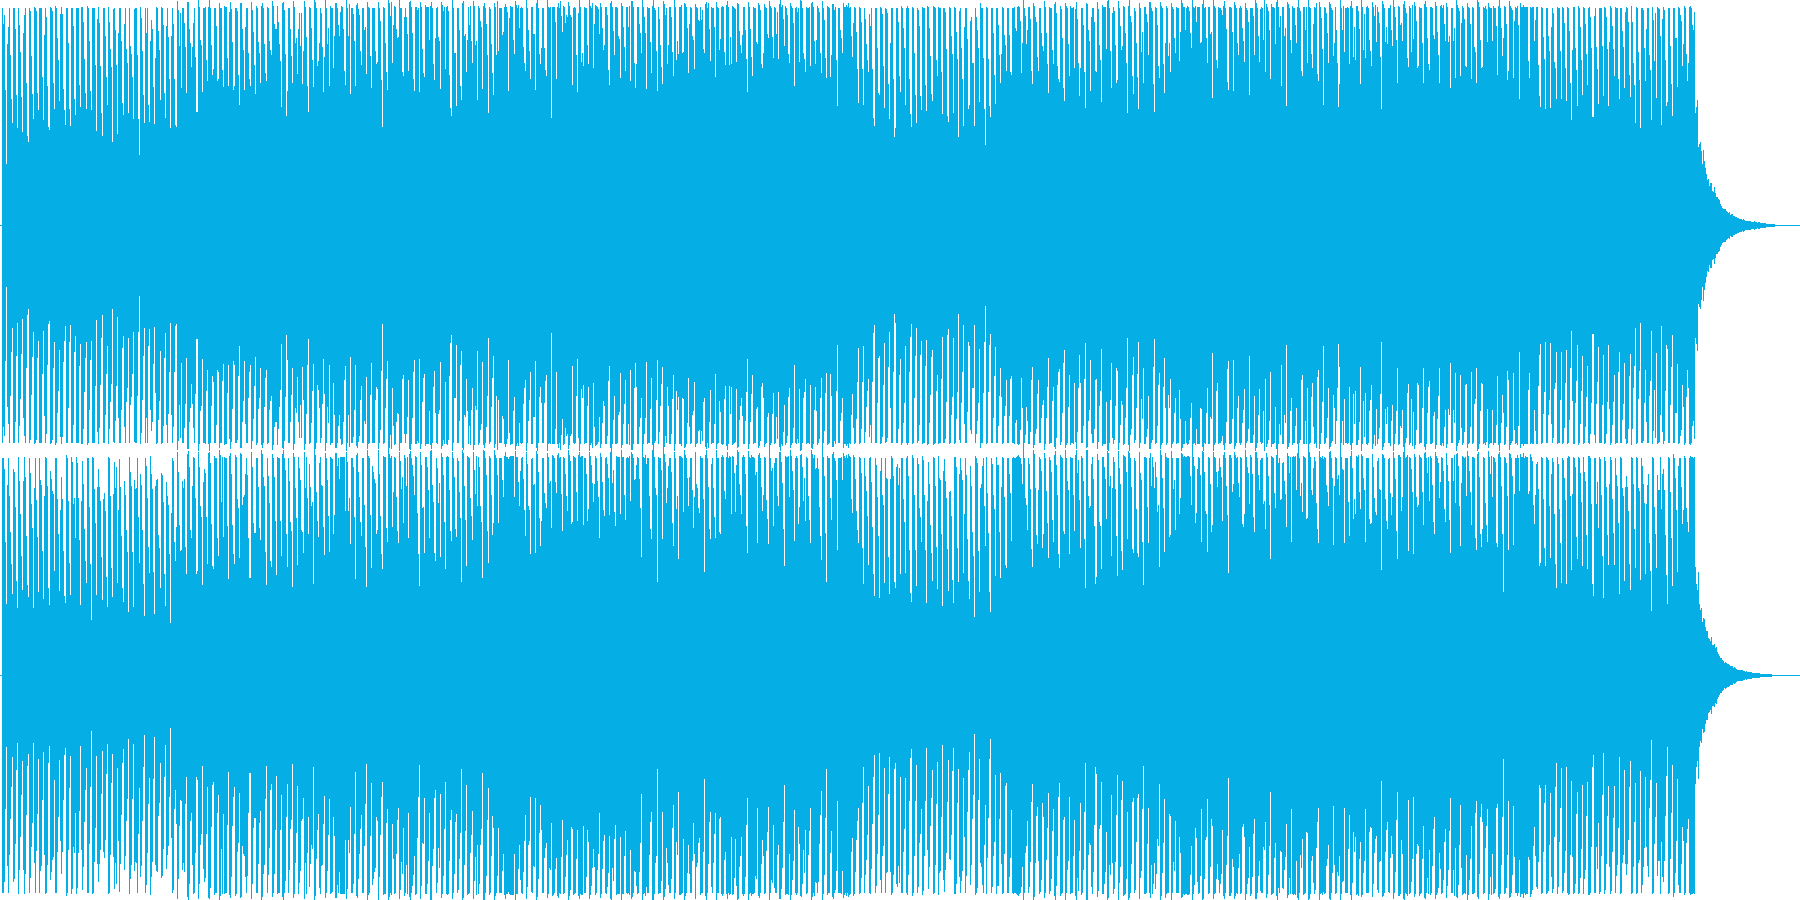 Uplifting Corporate's reproduced waveform